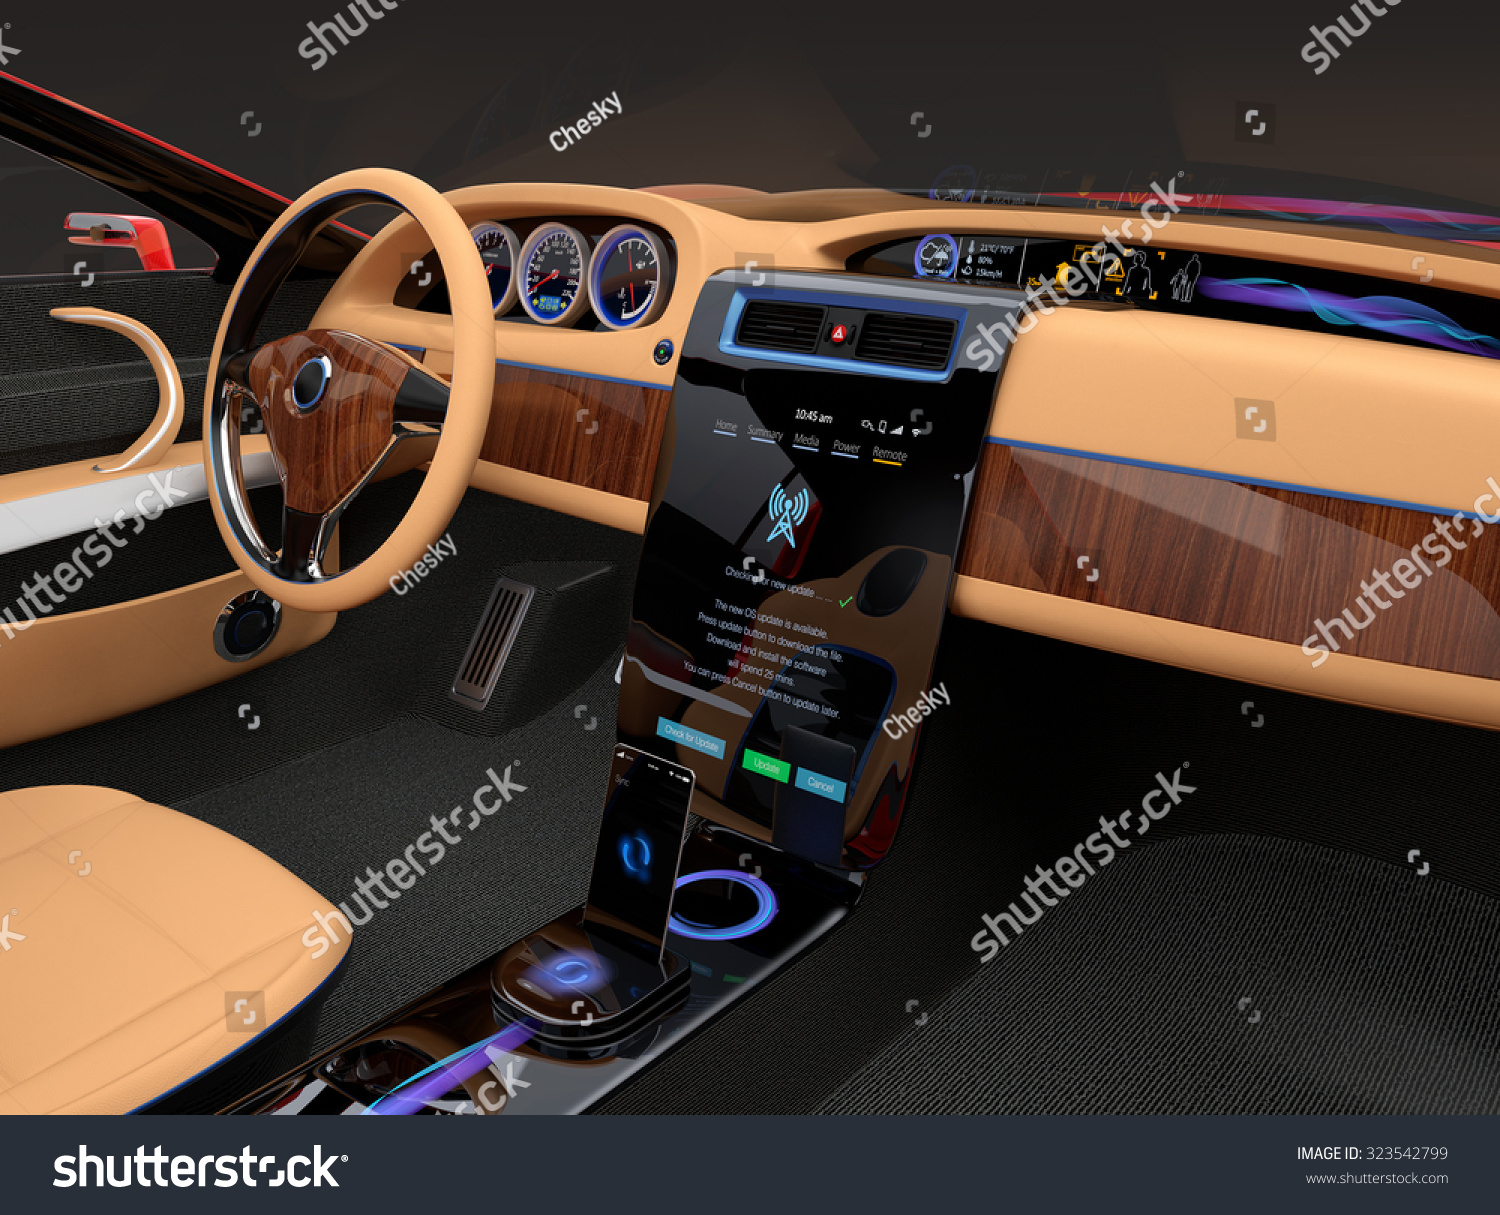 stylish electric car interior luxury wood stock illustration 323542799 shutterstock. Black Bedroom Furniture Sets. Home Design Ideas